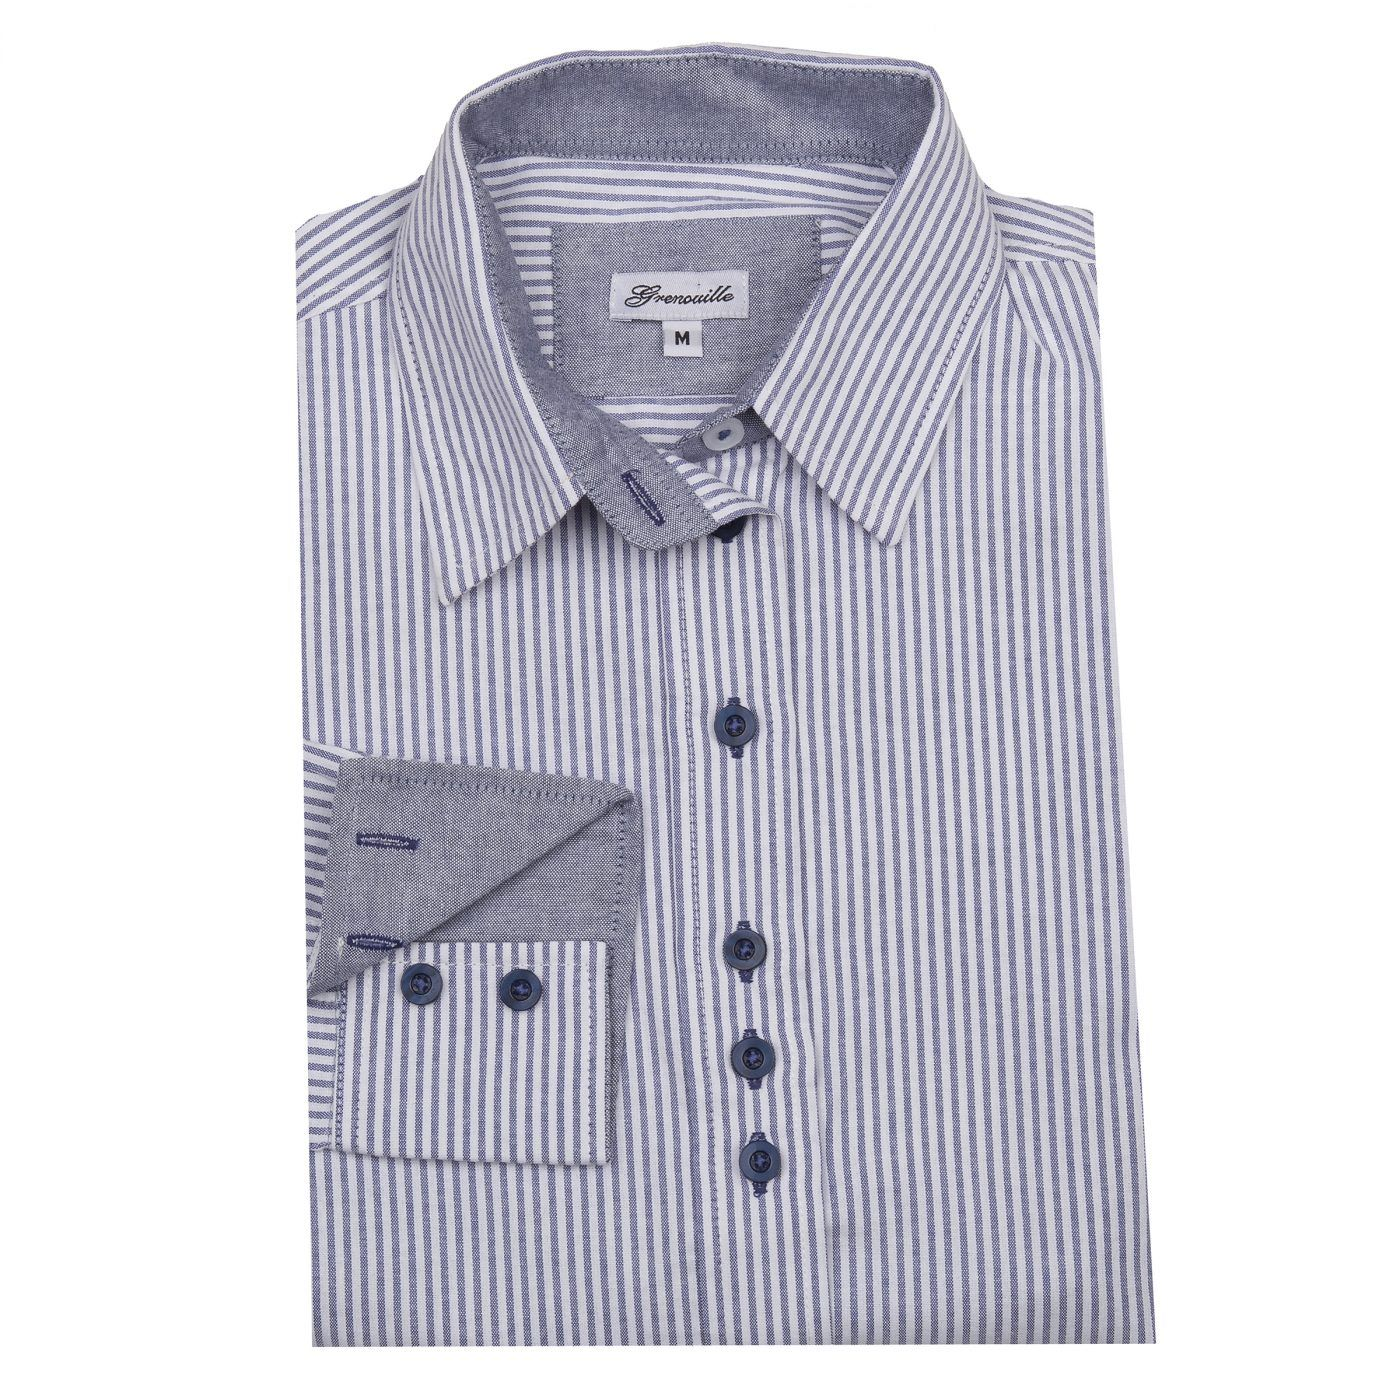 Oxford Shirt with Pale Blue Stripe